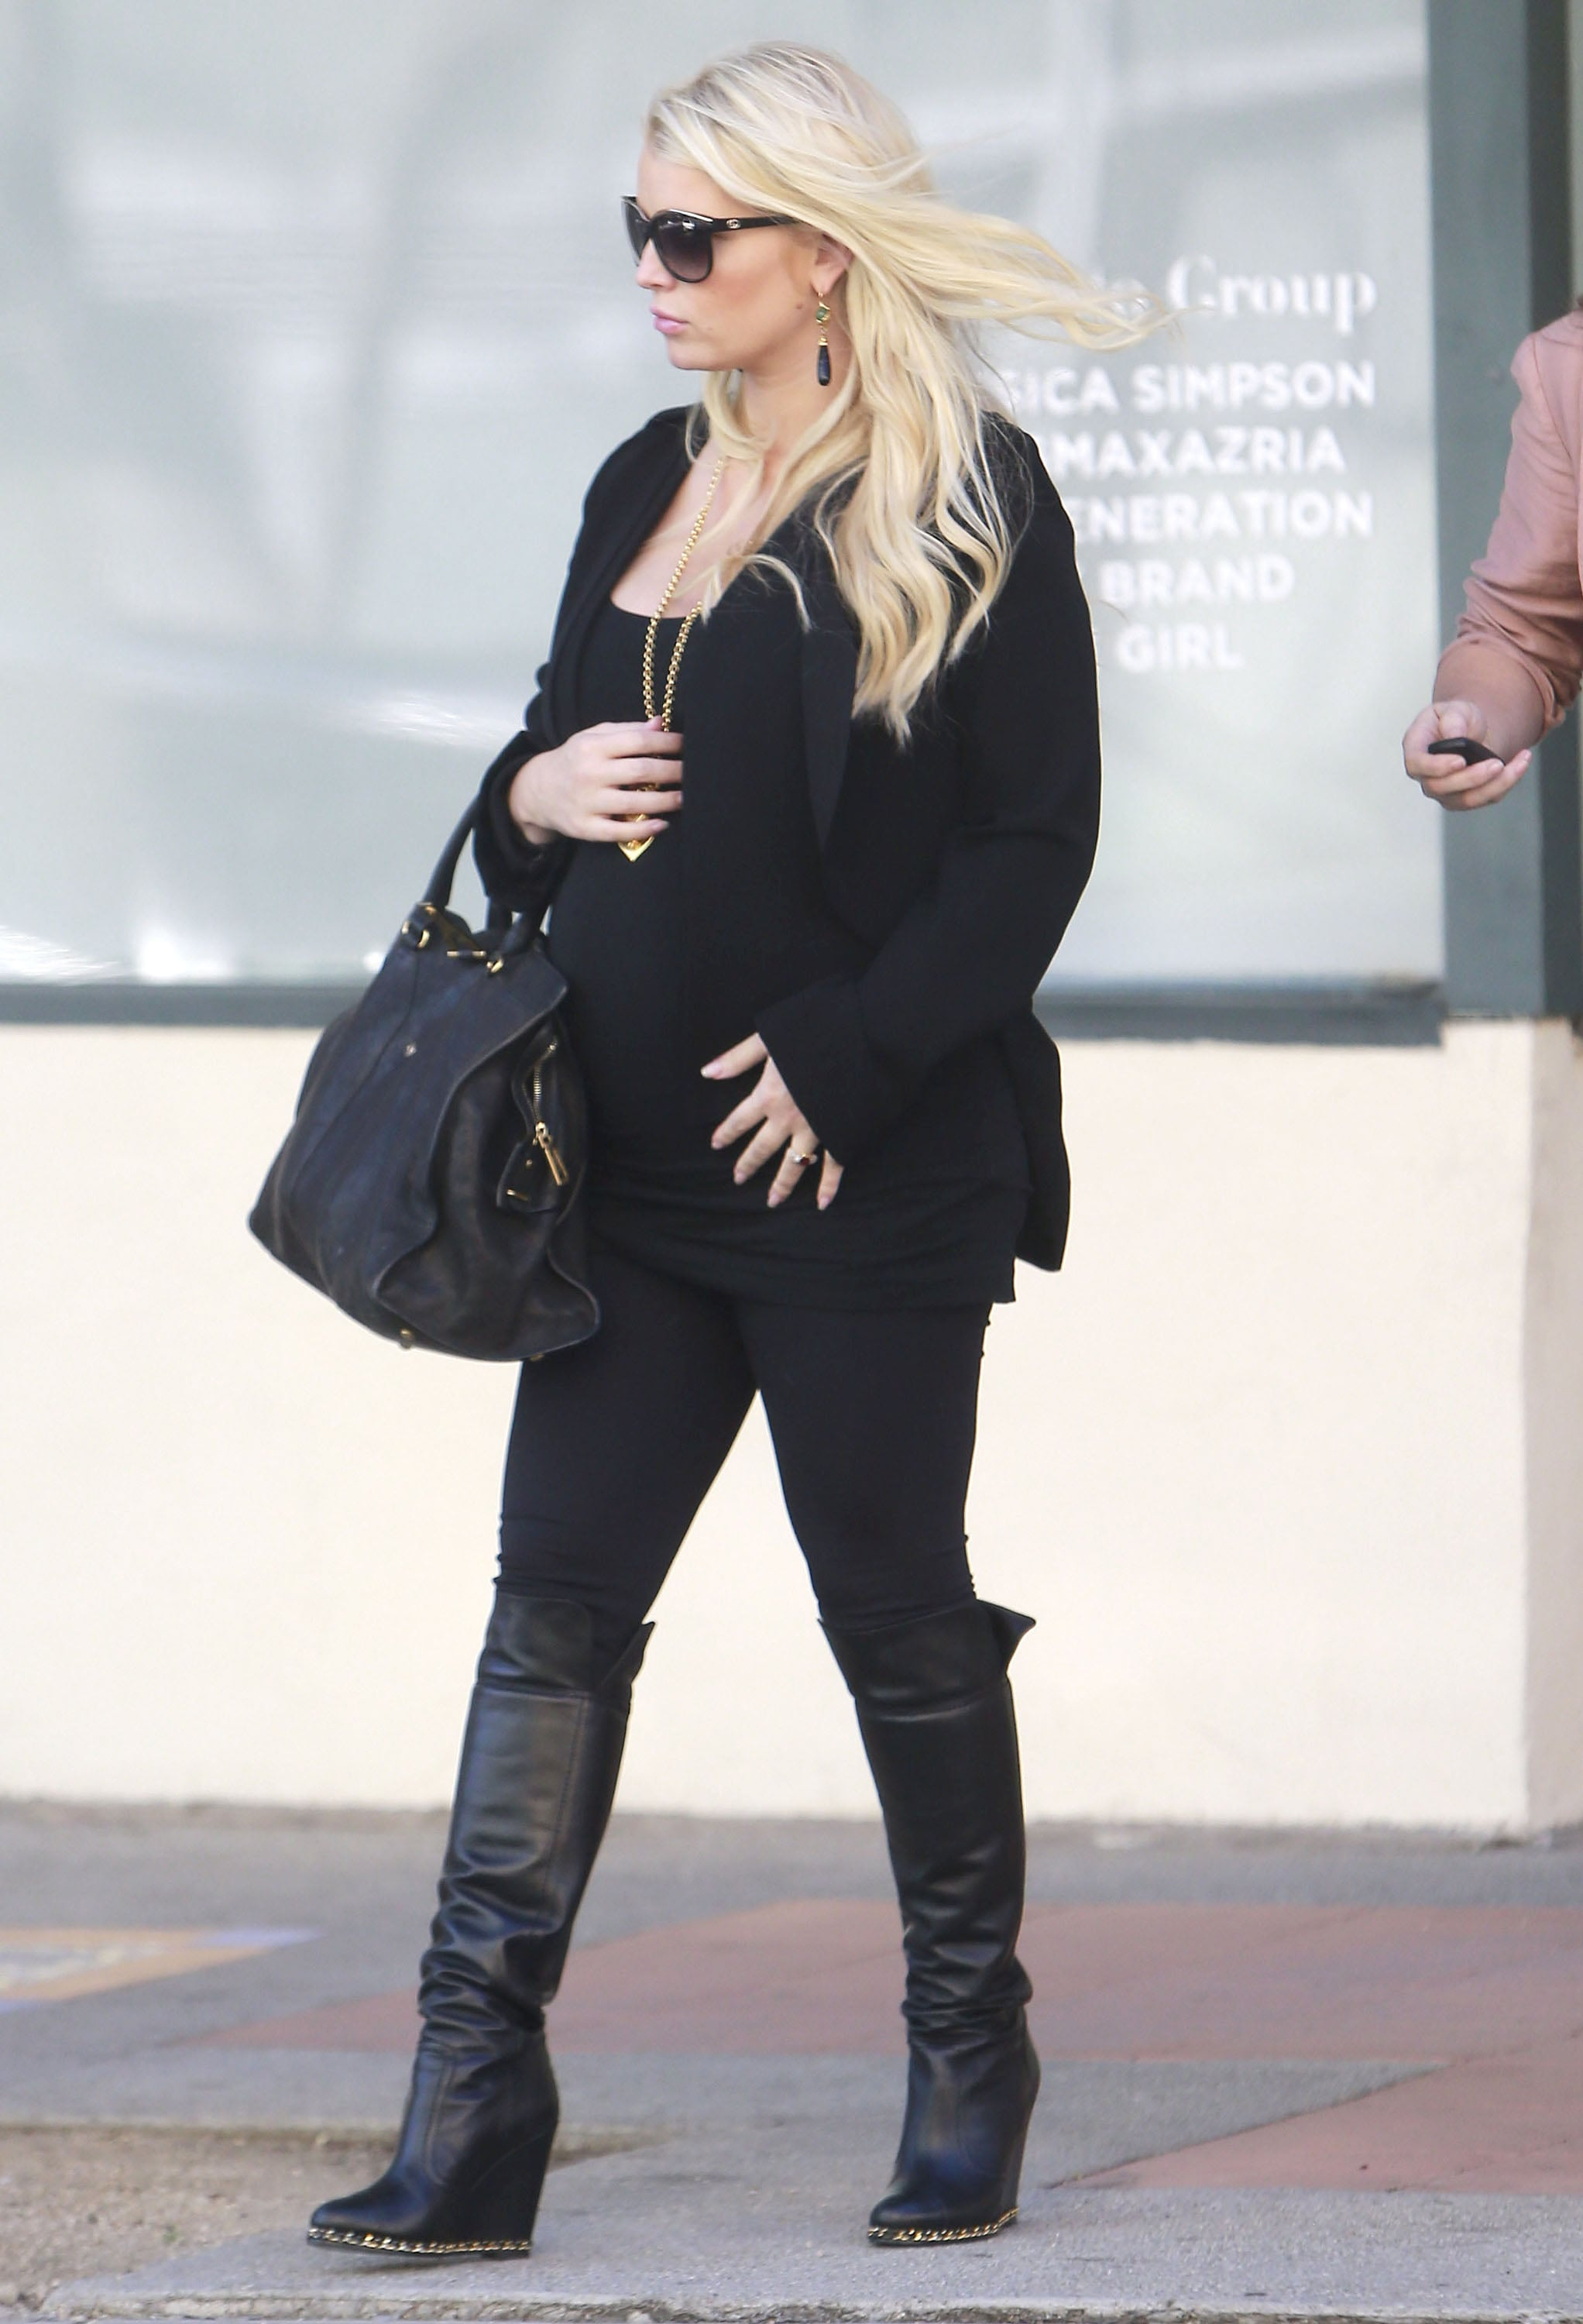 Jessica Simpson left an office building.